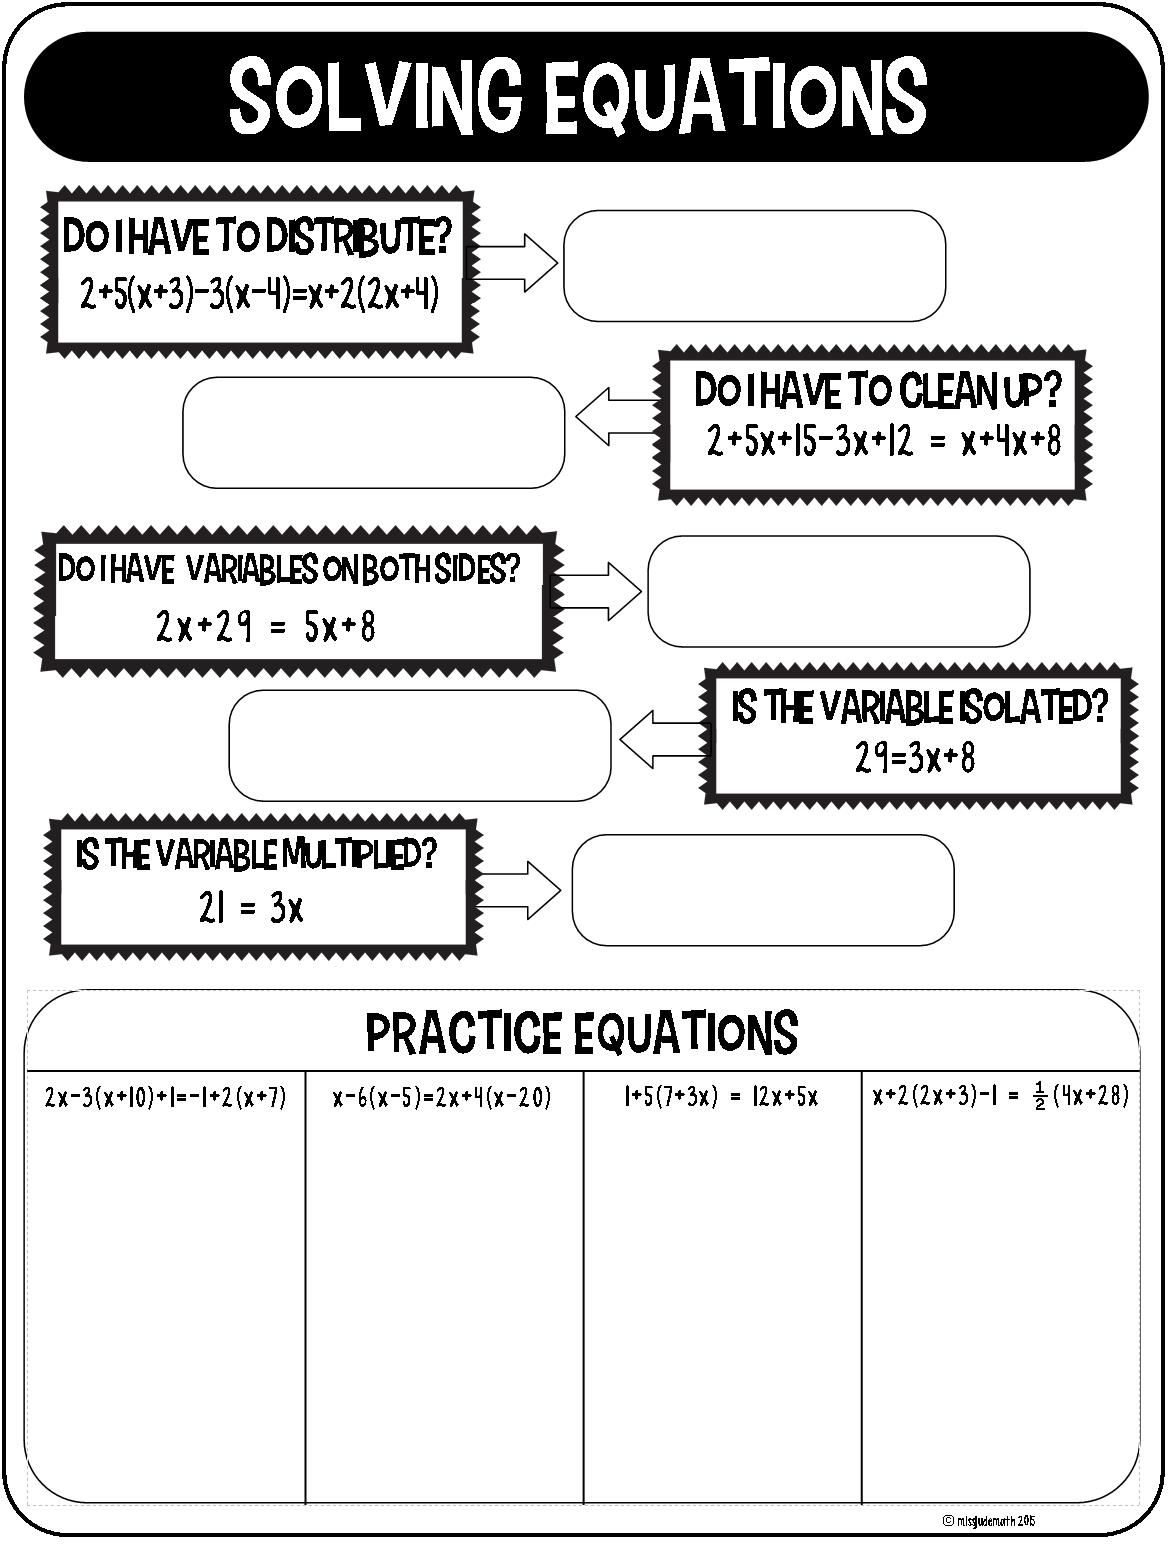 How To Solve An Equation Graphic Organizer For Interactive